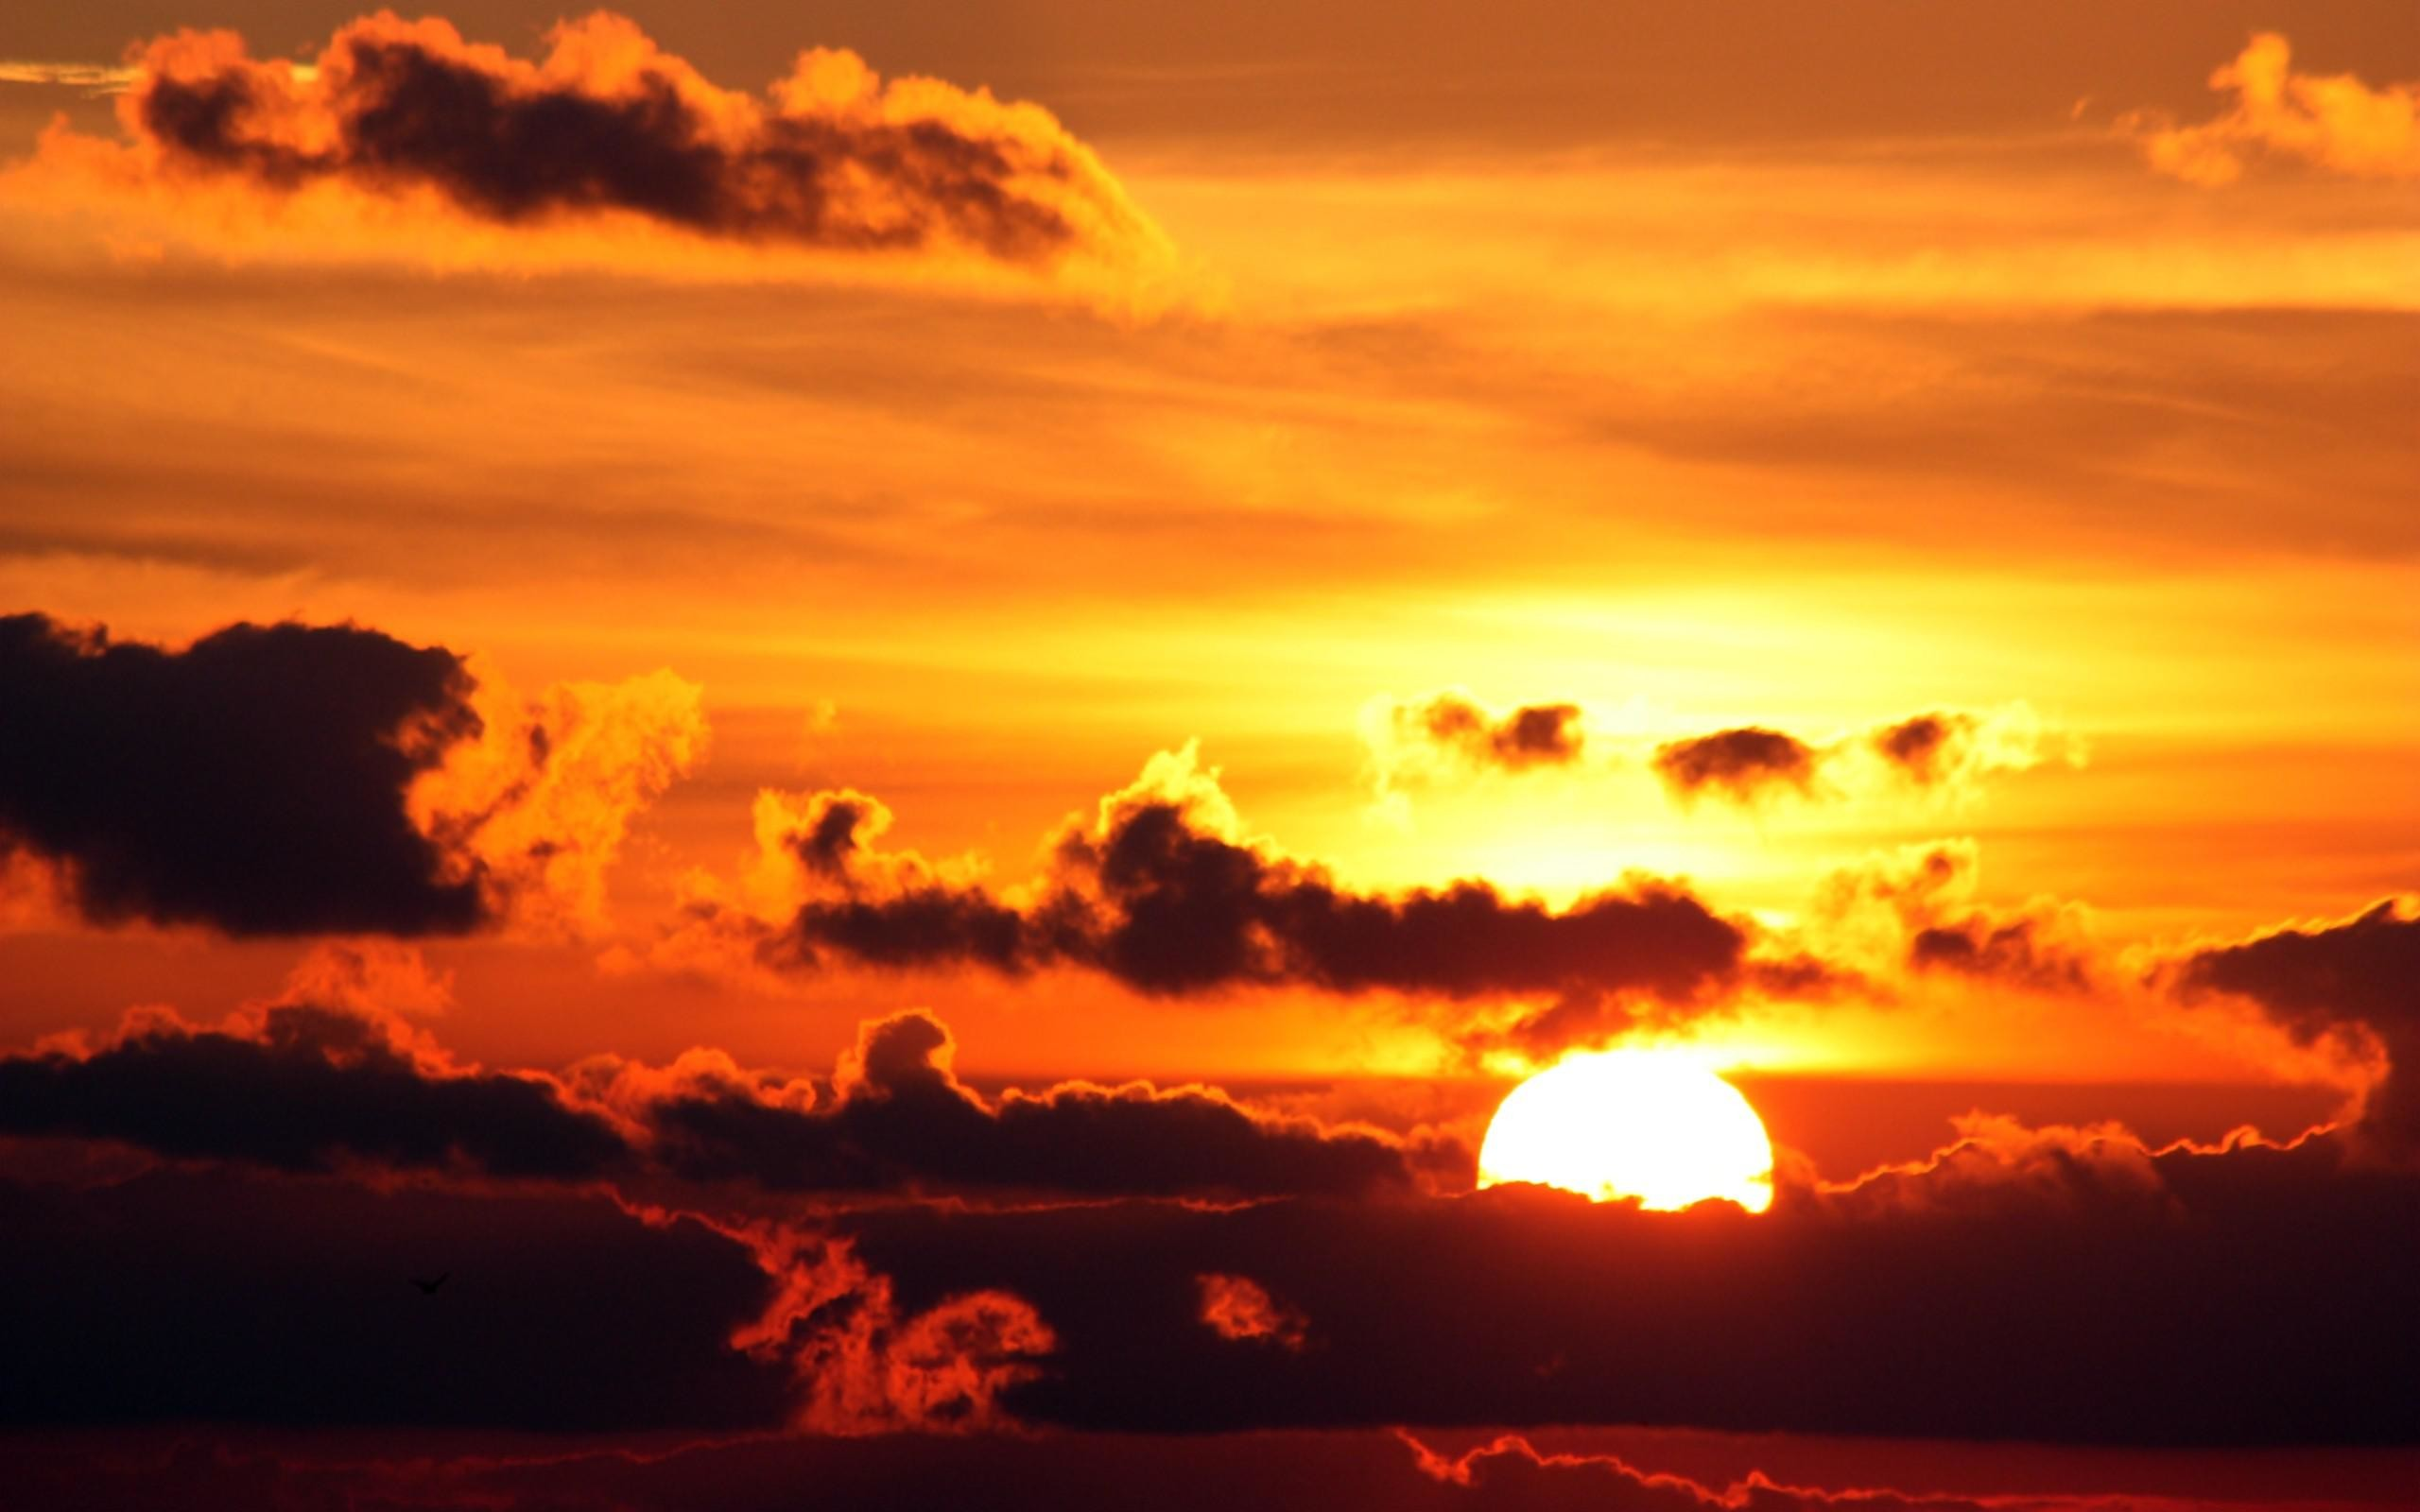 2560x1600 awesome sunset clouds landscapes nature sun skyscapes for desktop wallpaper  Check more at http:/